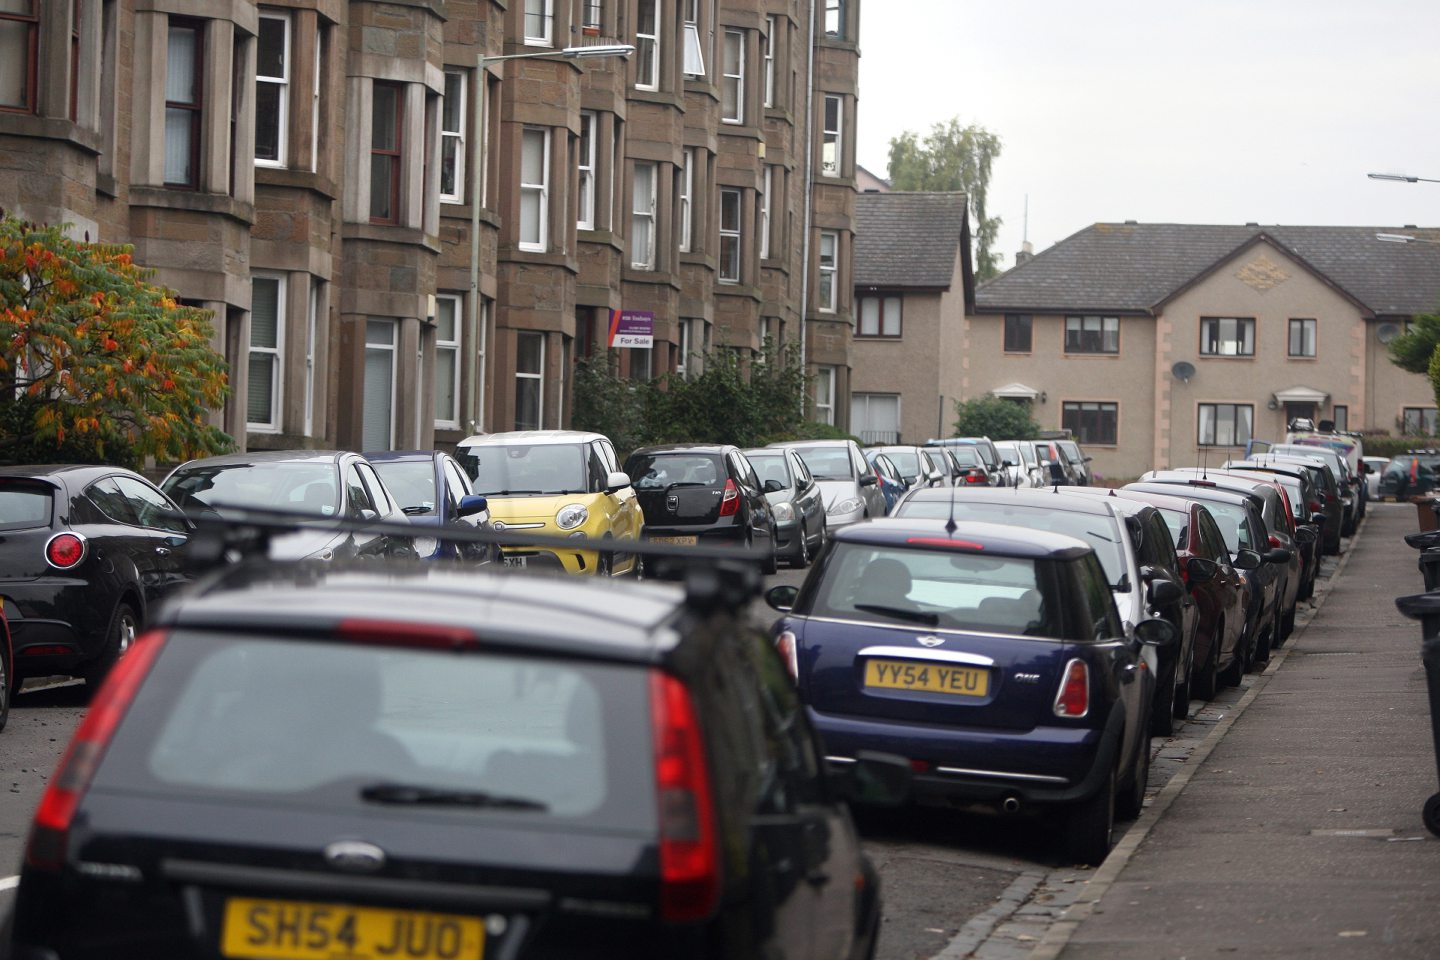 Parked cars in Dundee's Bellfield Avenue. (Stock image).